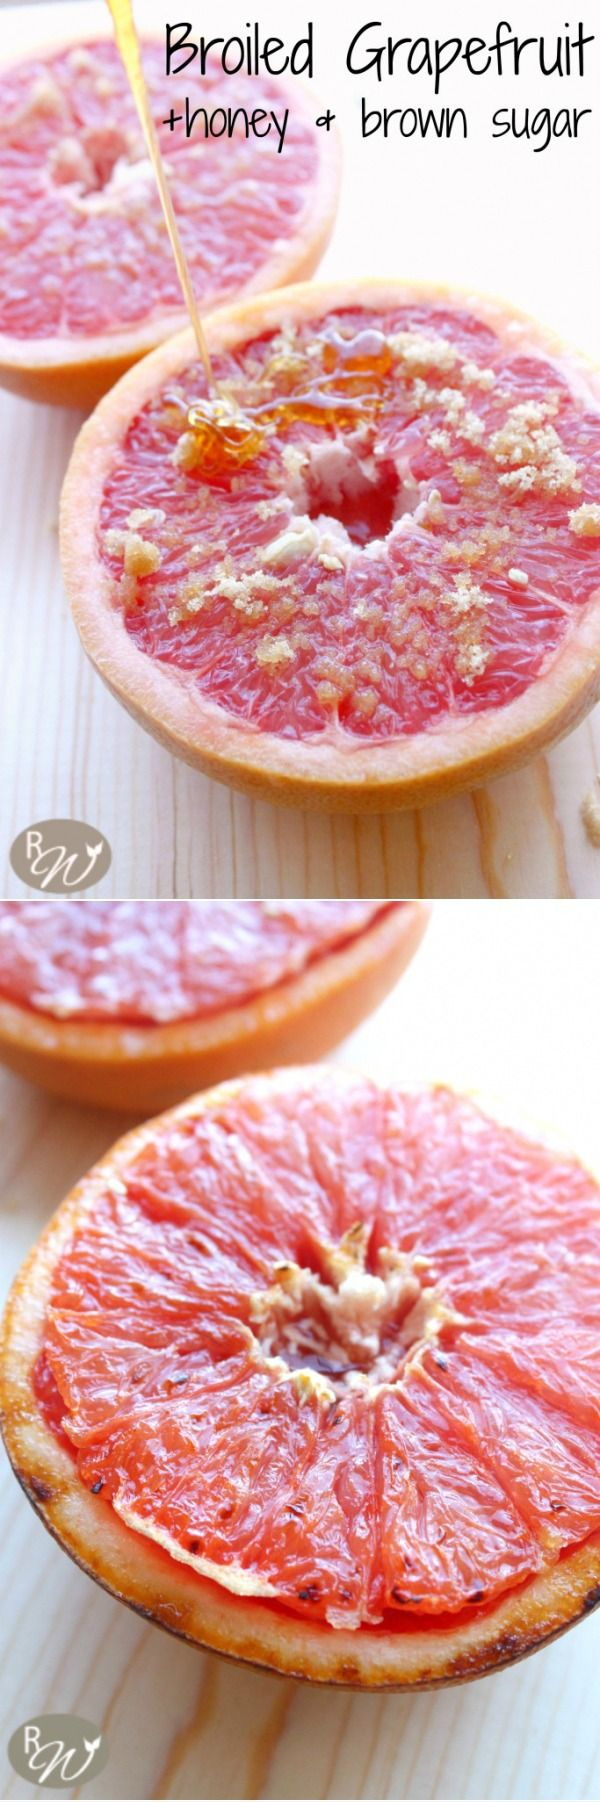 Change your grapefruit world with this recipe. Juicy grapefruit topped with brown sugar, cinnamon and honey and broiled to perfection. | therusticwillow.com